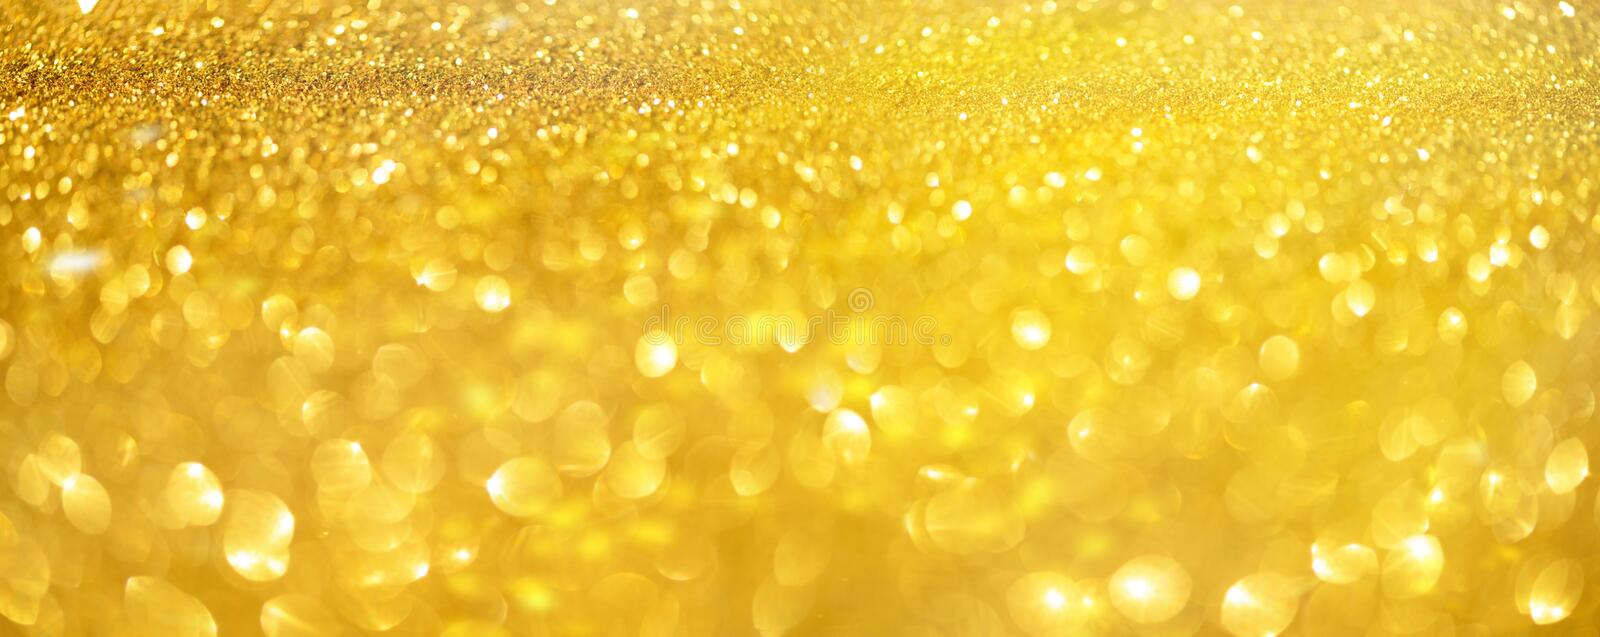 Golden shiny background, copy space for your Christmas greetings. Banner with defocused lights, bright yellow bokeh. Shimmer of. Gold glitter texture. Concept royalty free stock images